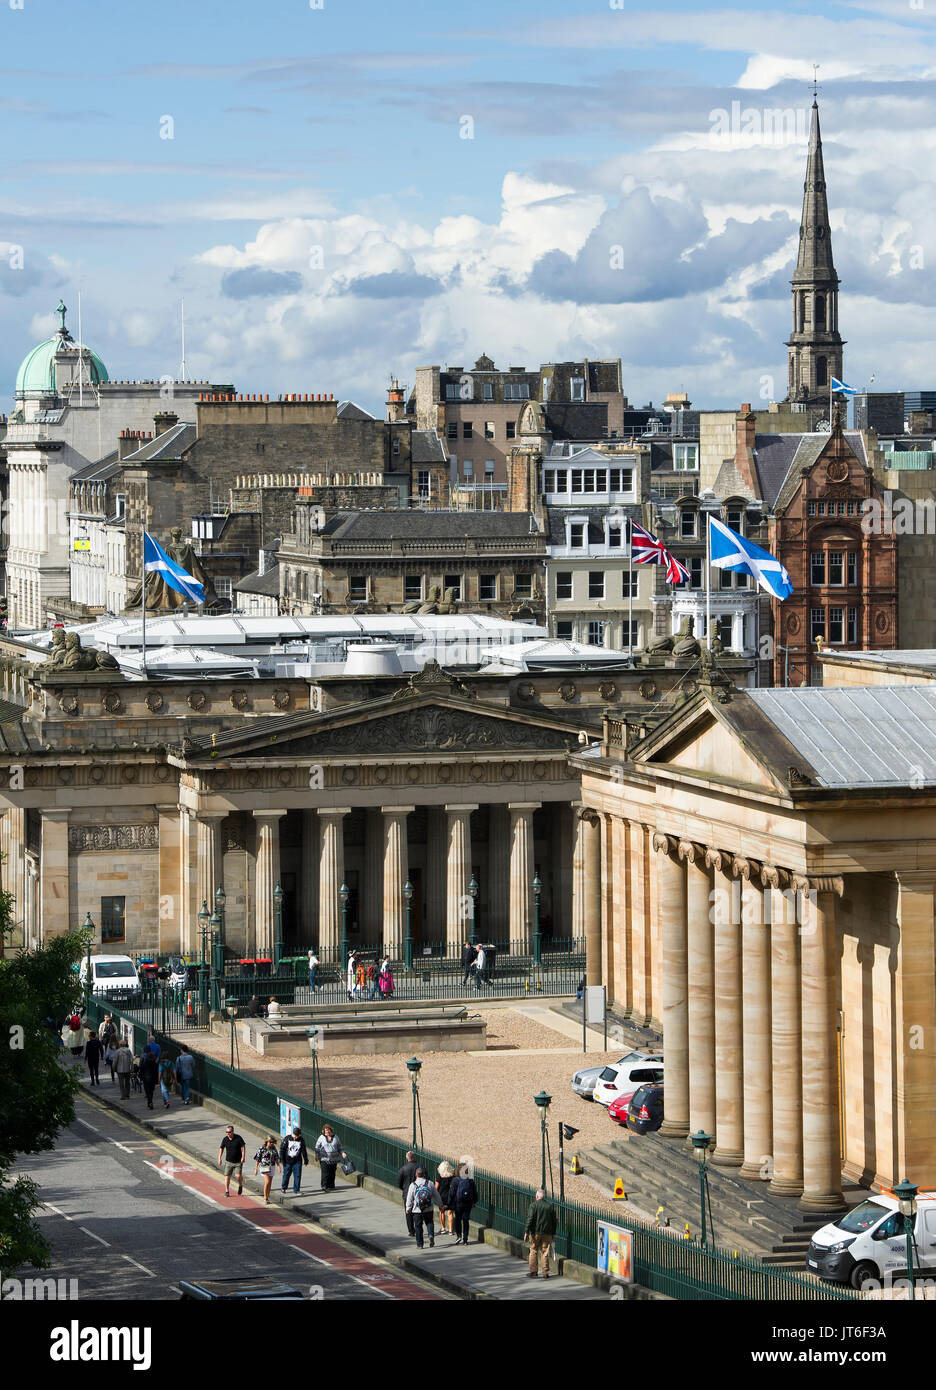 A view of the Scottish National Gallery and the Royal Scottish Academy on the Mound, Edinburgh. Stock Photo